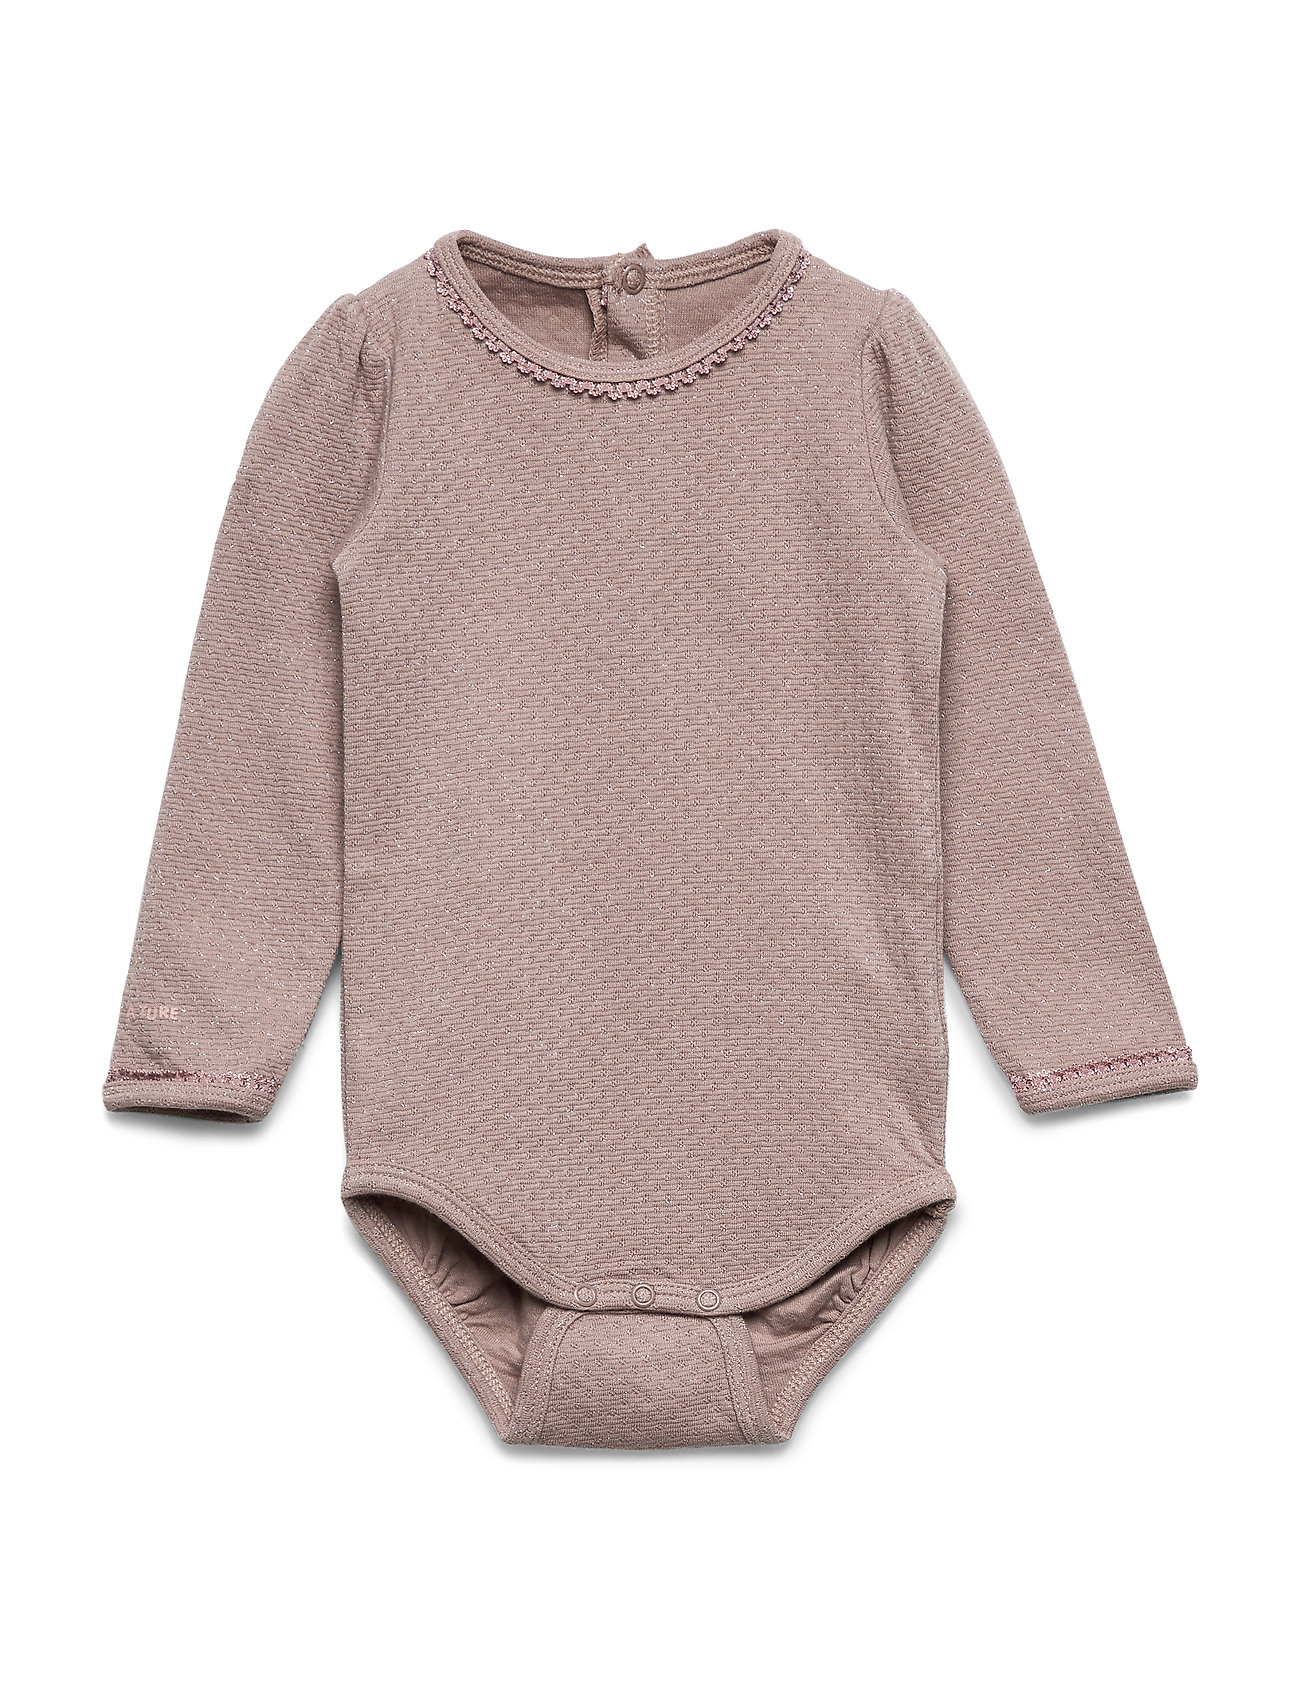 Mini A Ture Maxie Body, B - SPHINX ROSE